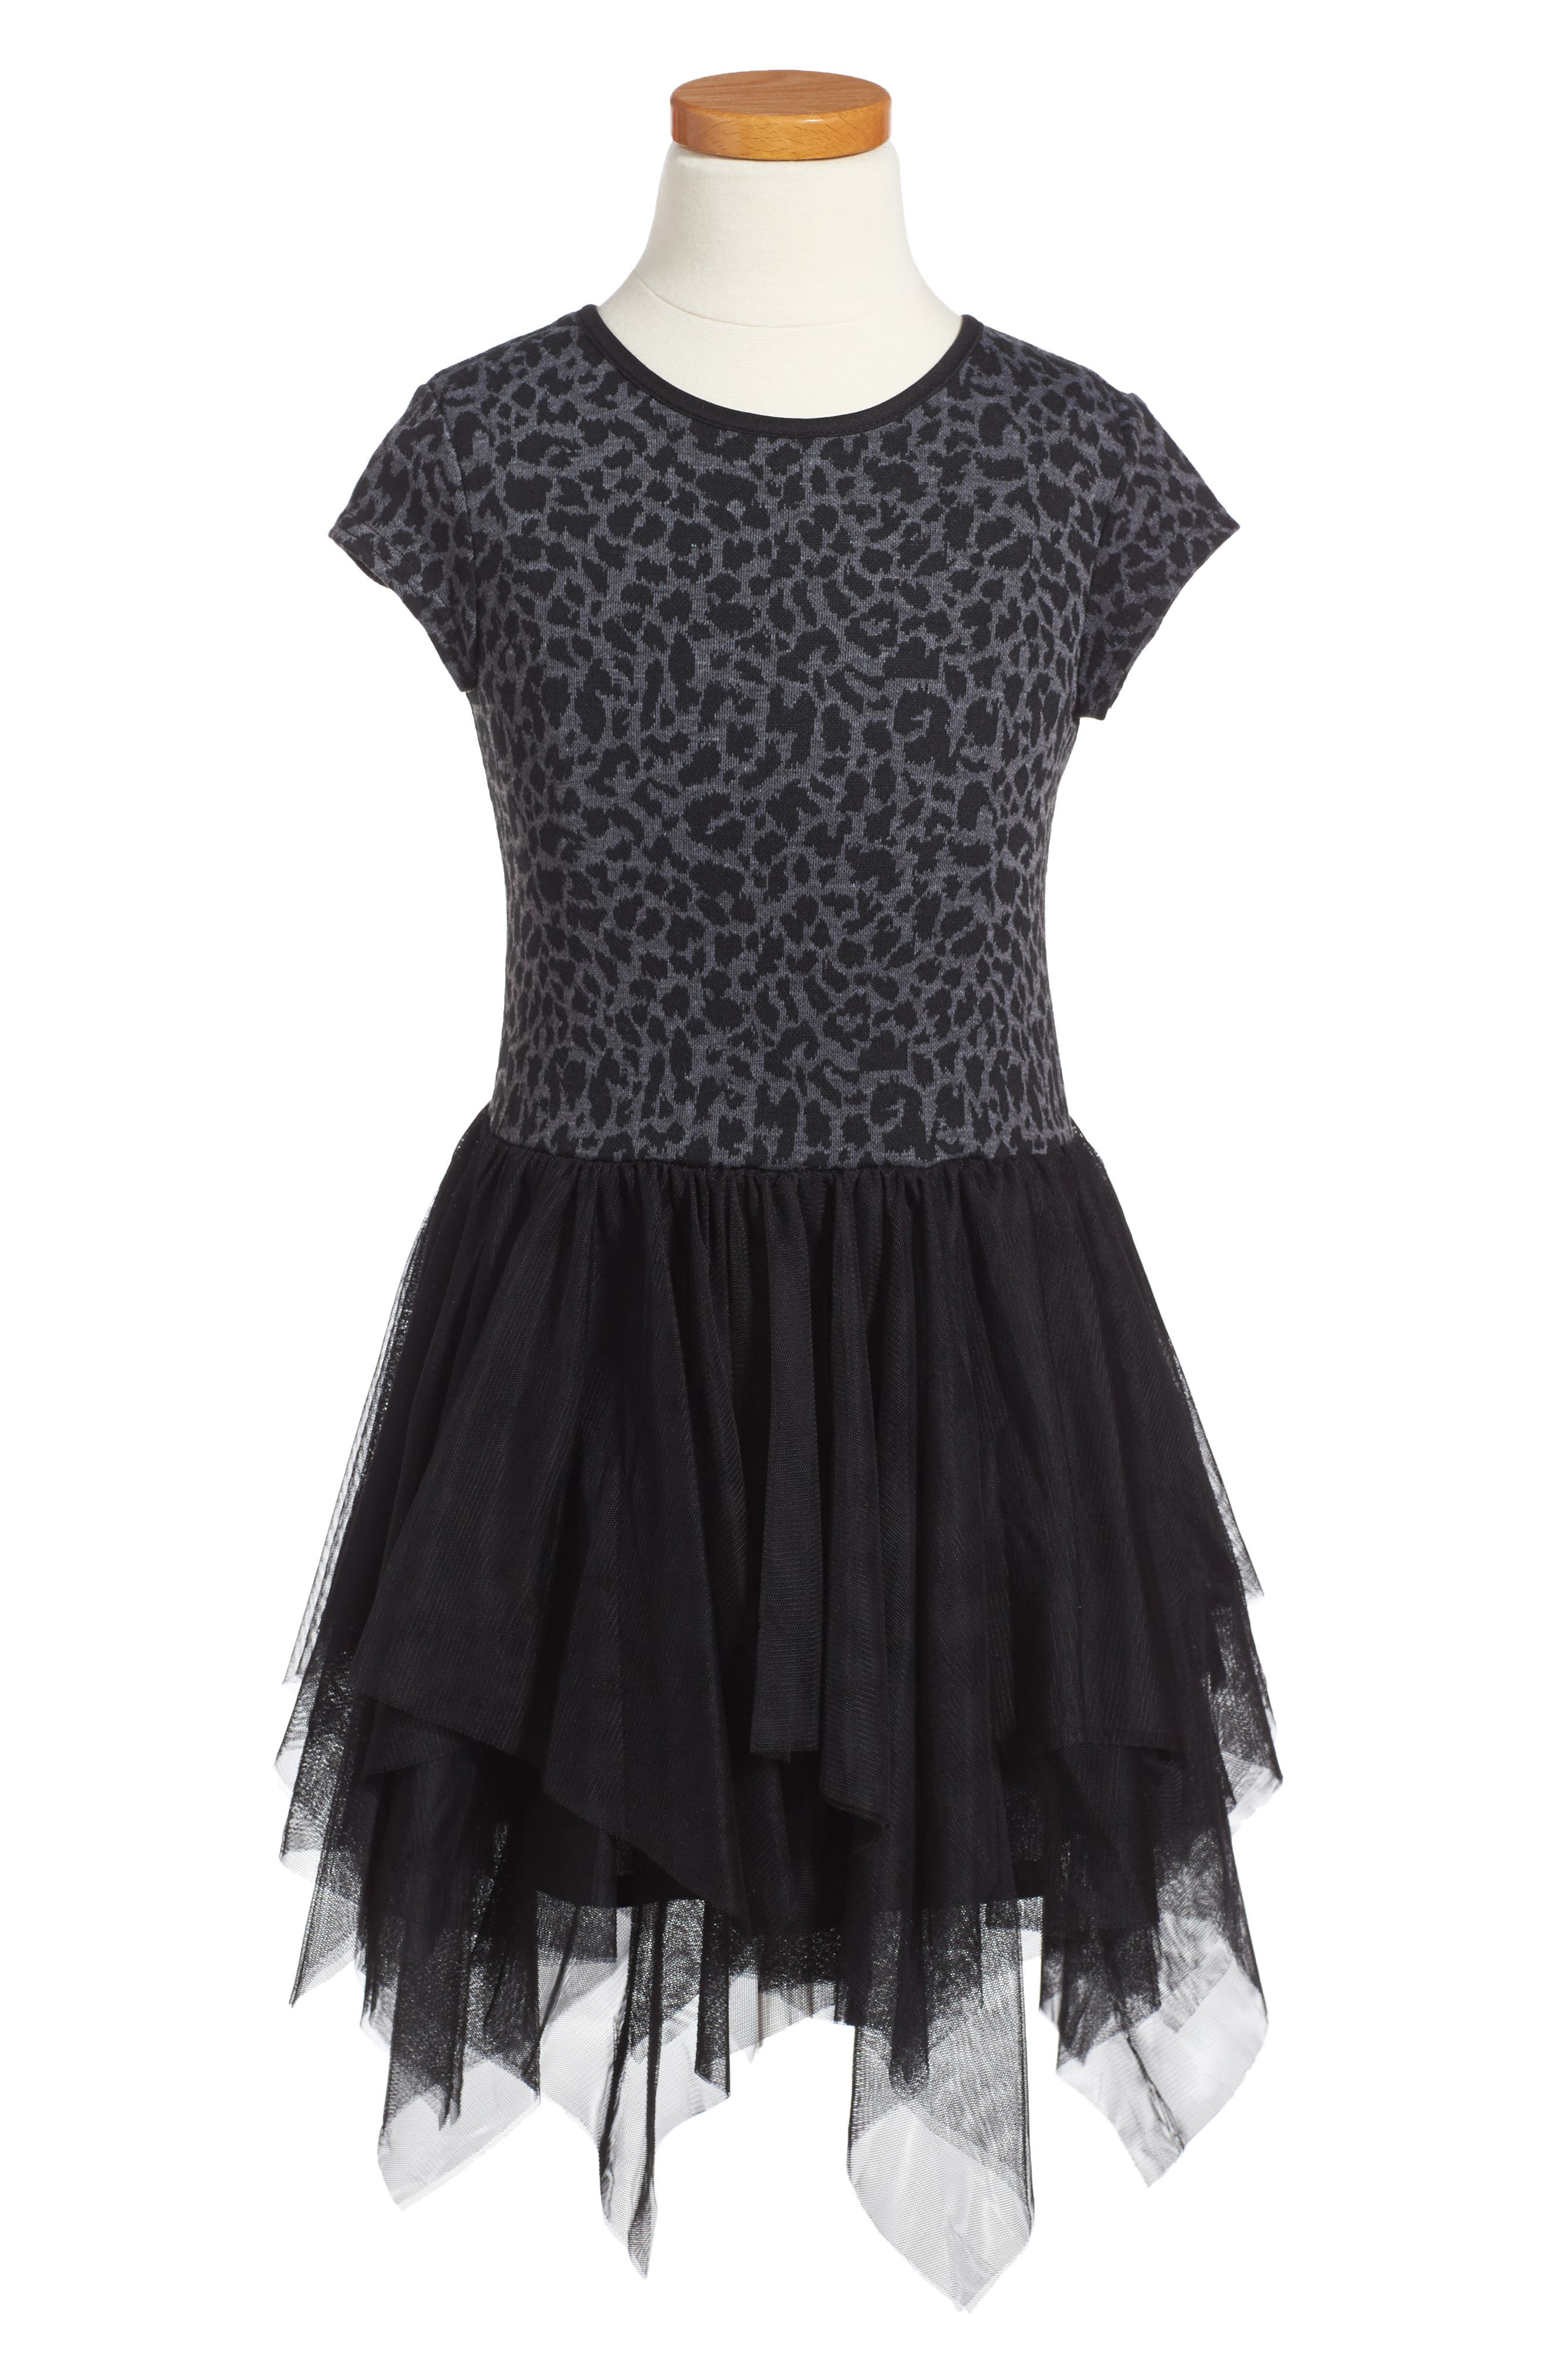 Pippa & Julie Leopard Print Tulle Dress (Toddler Girls & Little Girls)